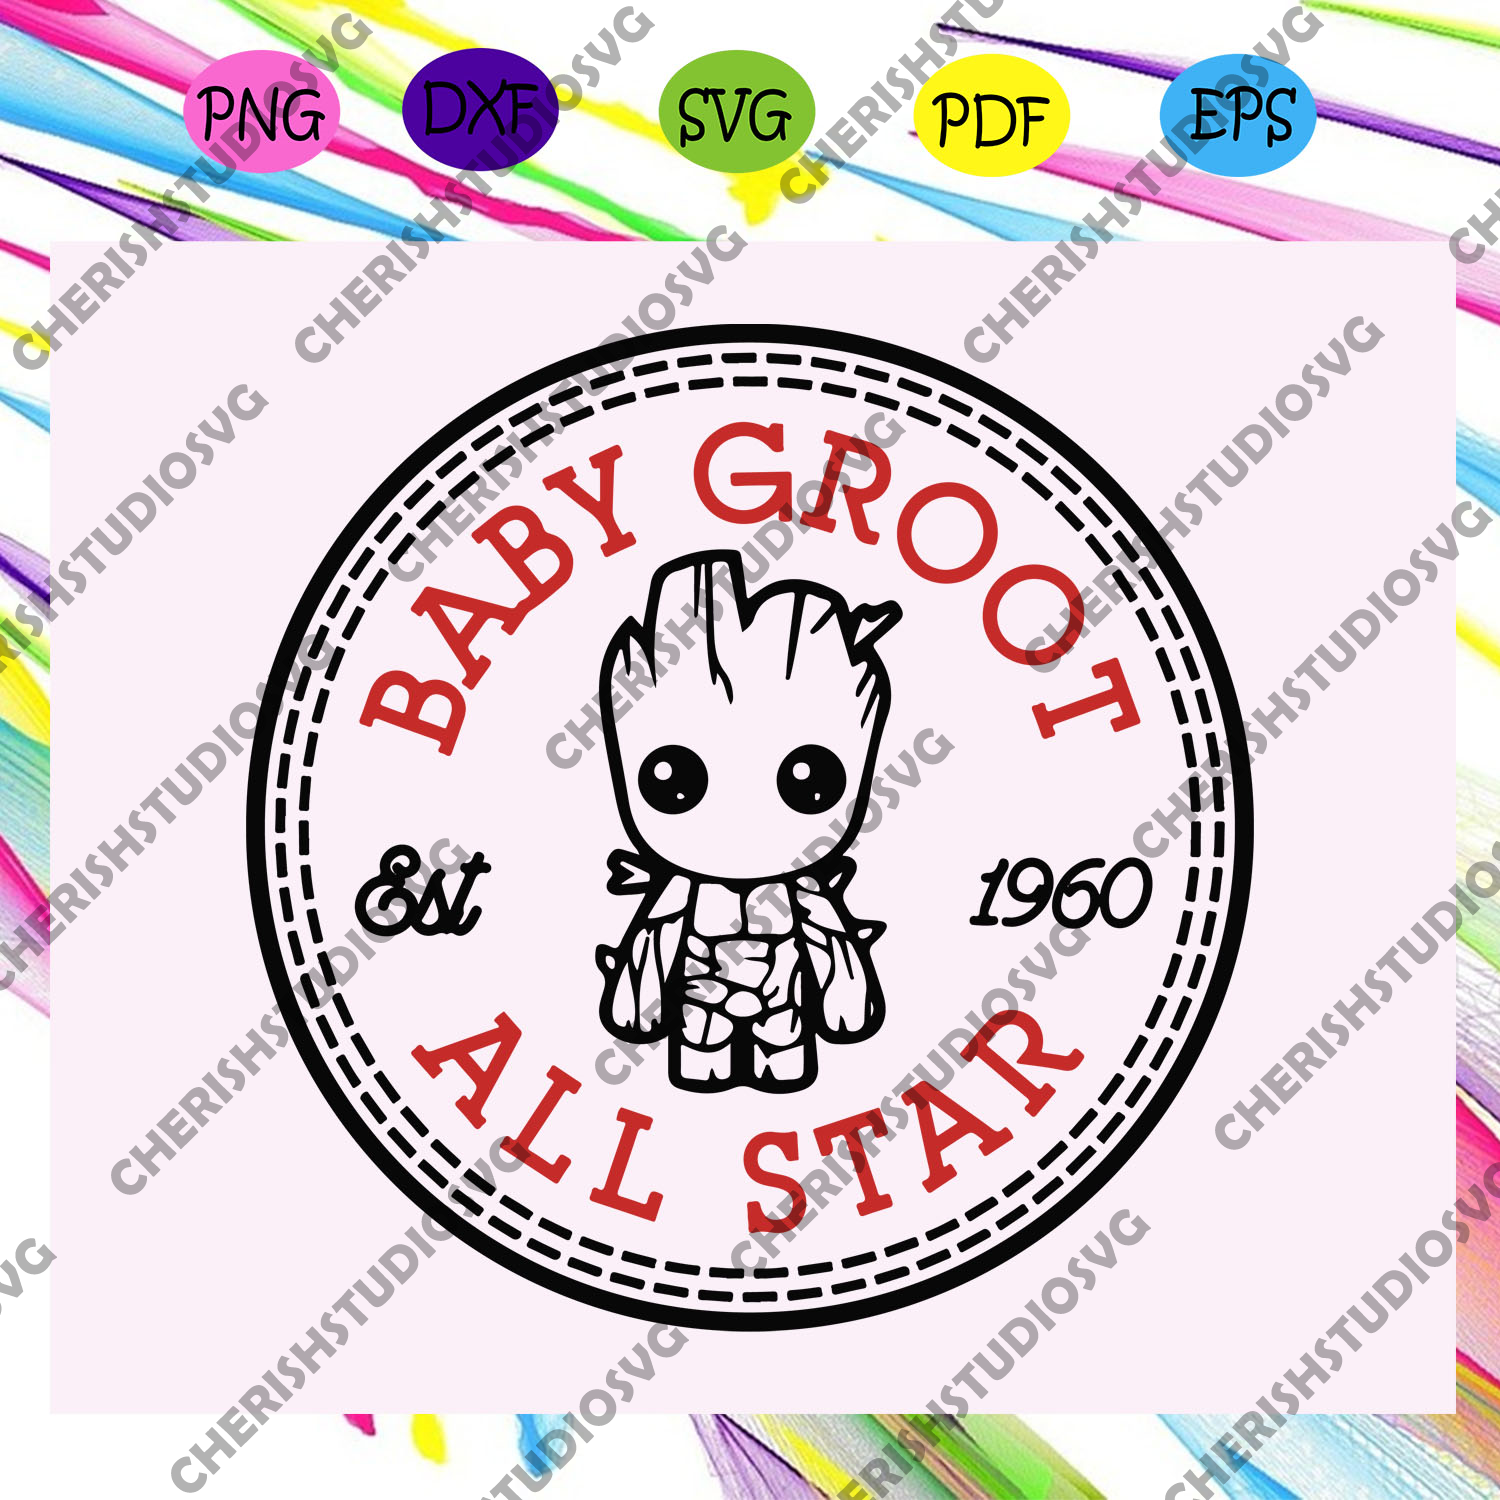 Baby groot all star est 1960, marvel, marvel svg, baby groot, baby groot svg, all star, super heroes,trending svg For Silhouette, Files For Cricut, SVG, DXF, EPS, PNG Instant Download